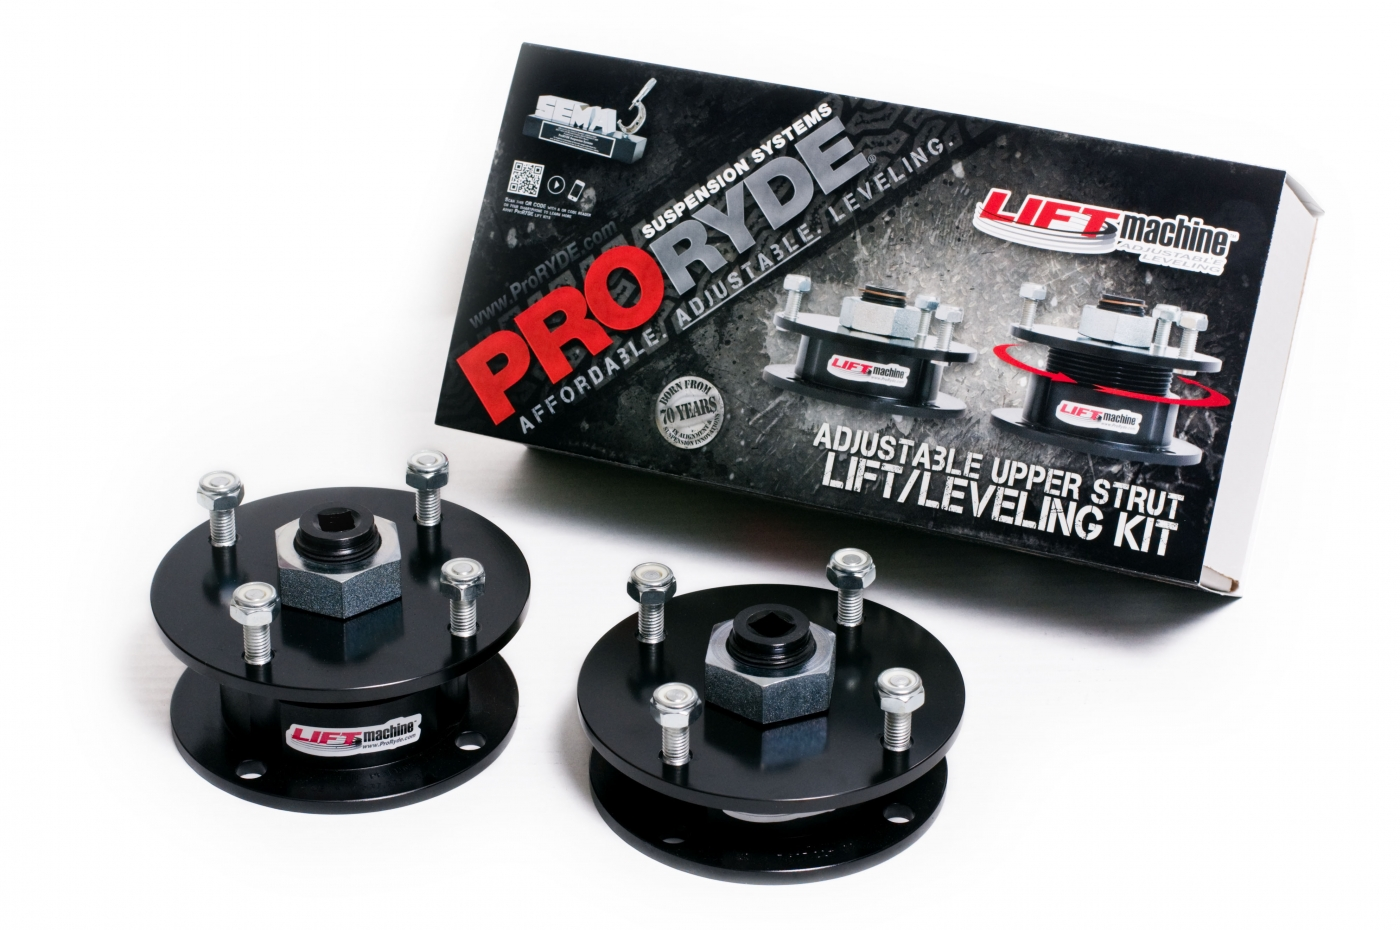 Toyota Leveling Kits Proryde Liftkits Lift Tundra Sequoia Adjustable Front Kit